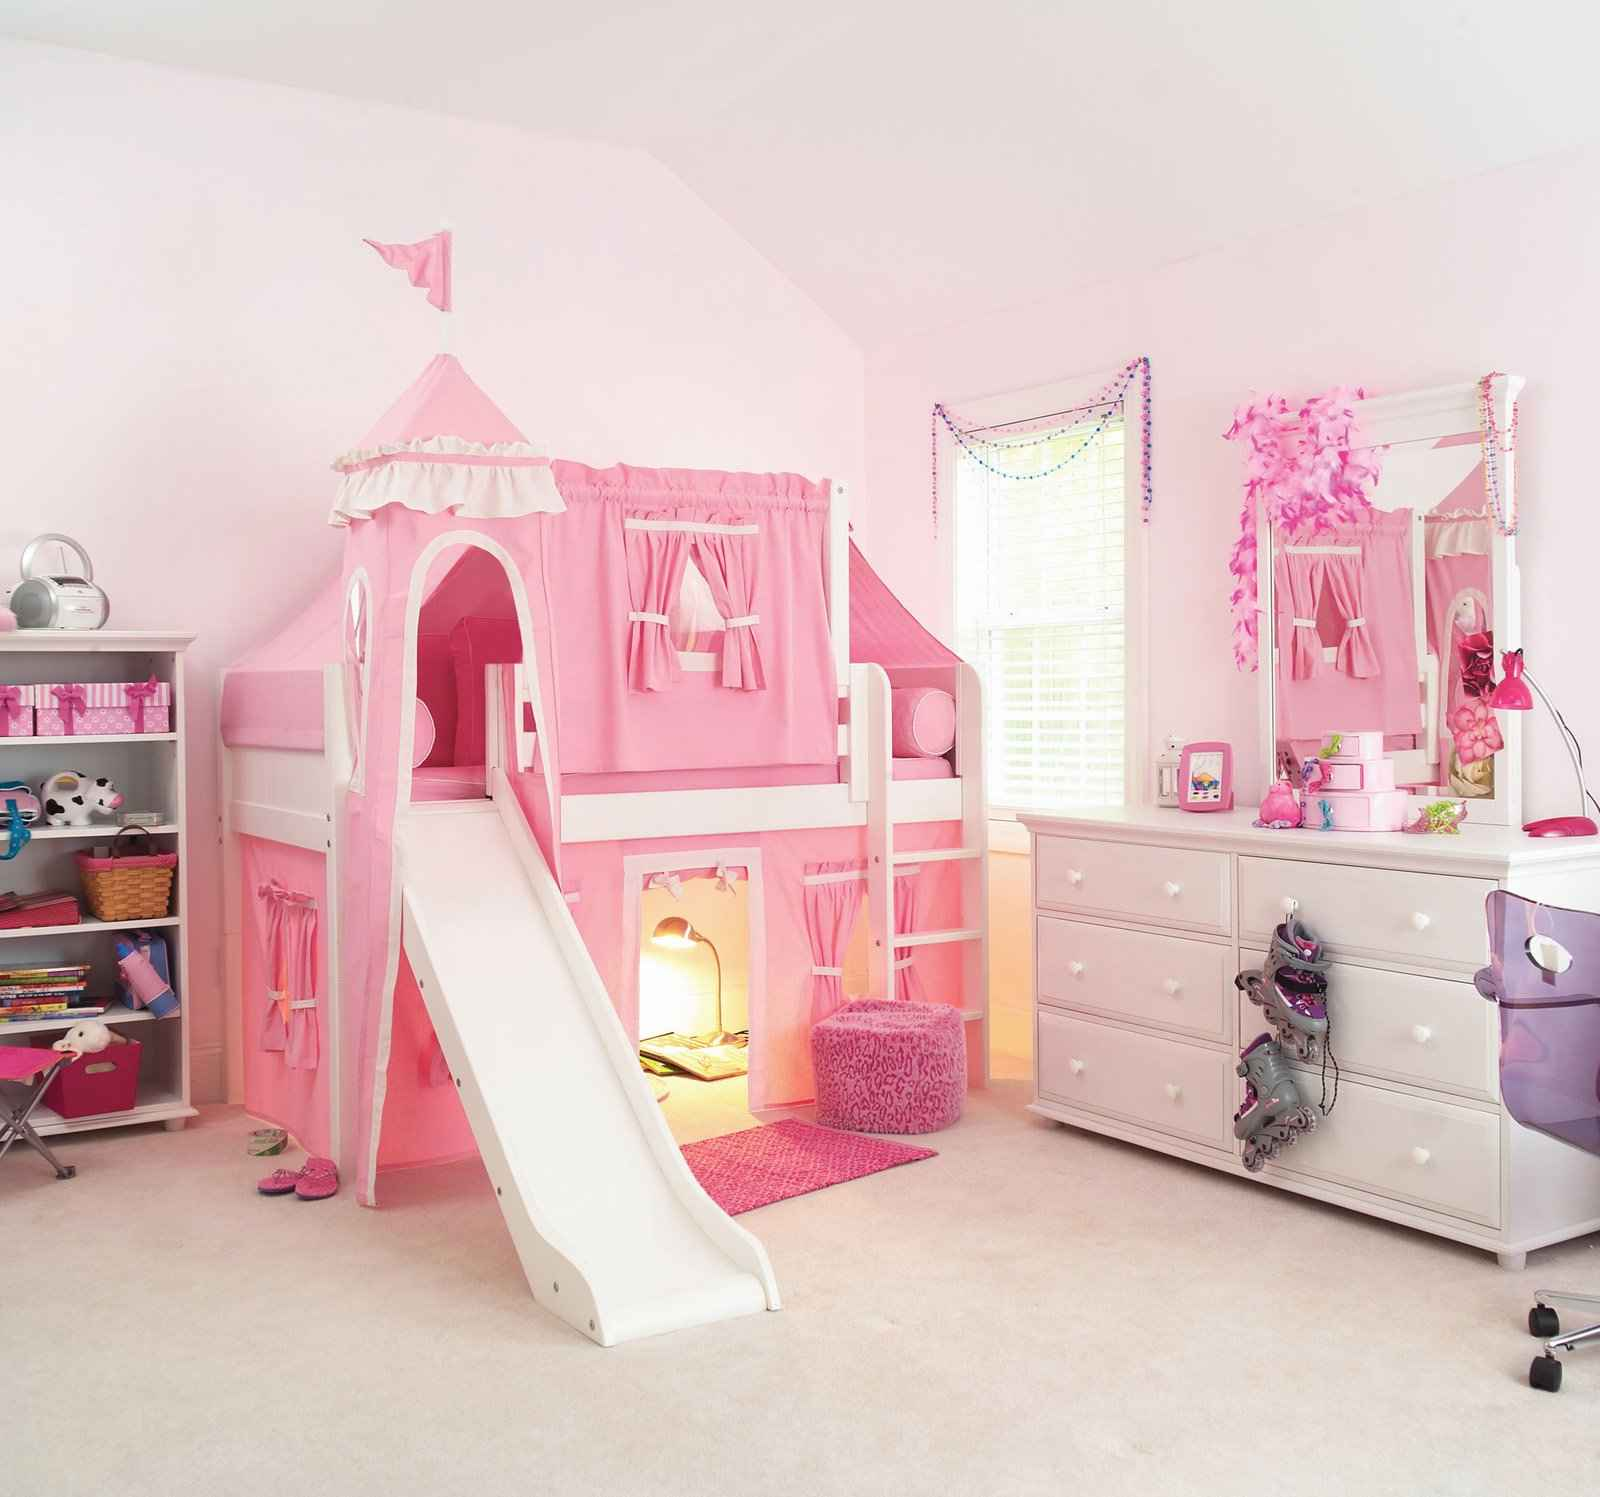 Awesome Beds: Cool Loft Beds For Girls Images 8 Marvelous-deluxe-loft